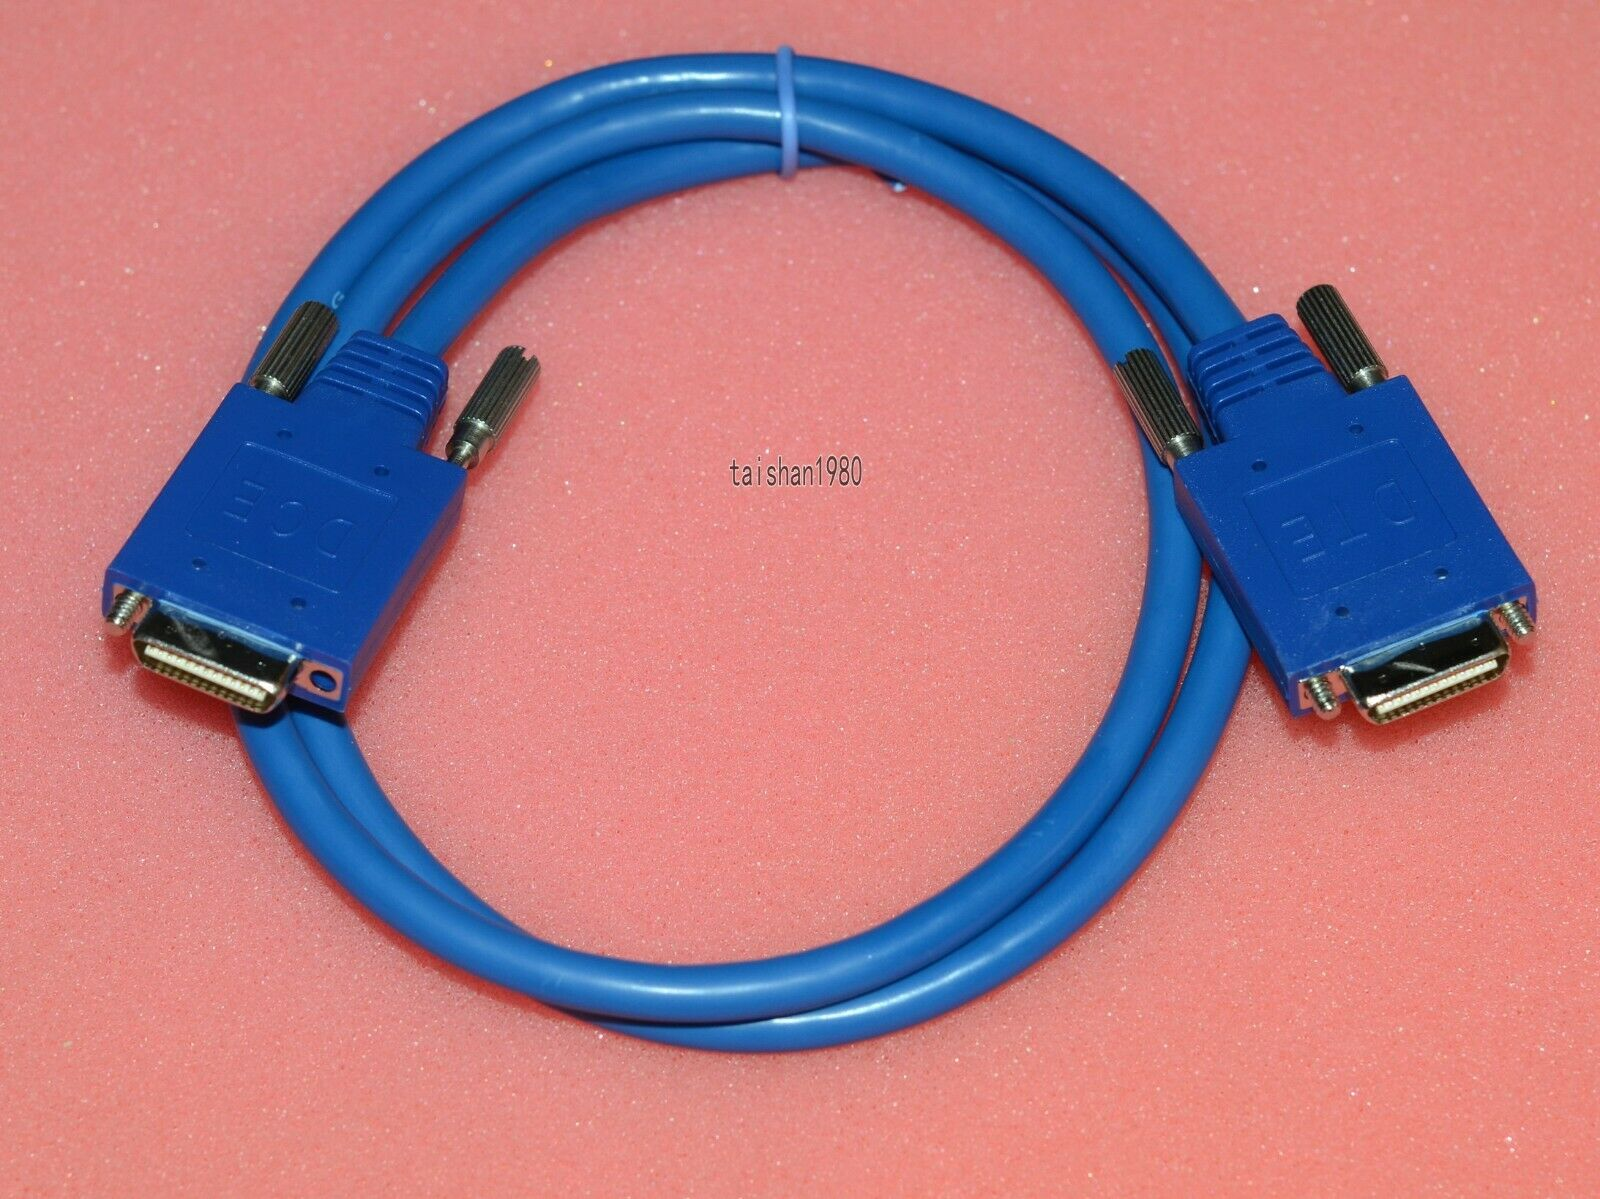 CISCO 3FT CAB-SS-2626X Cable Back-To-Back DTE-DCE Cable for WIC-2T